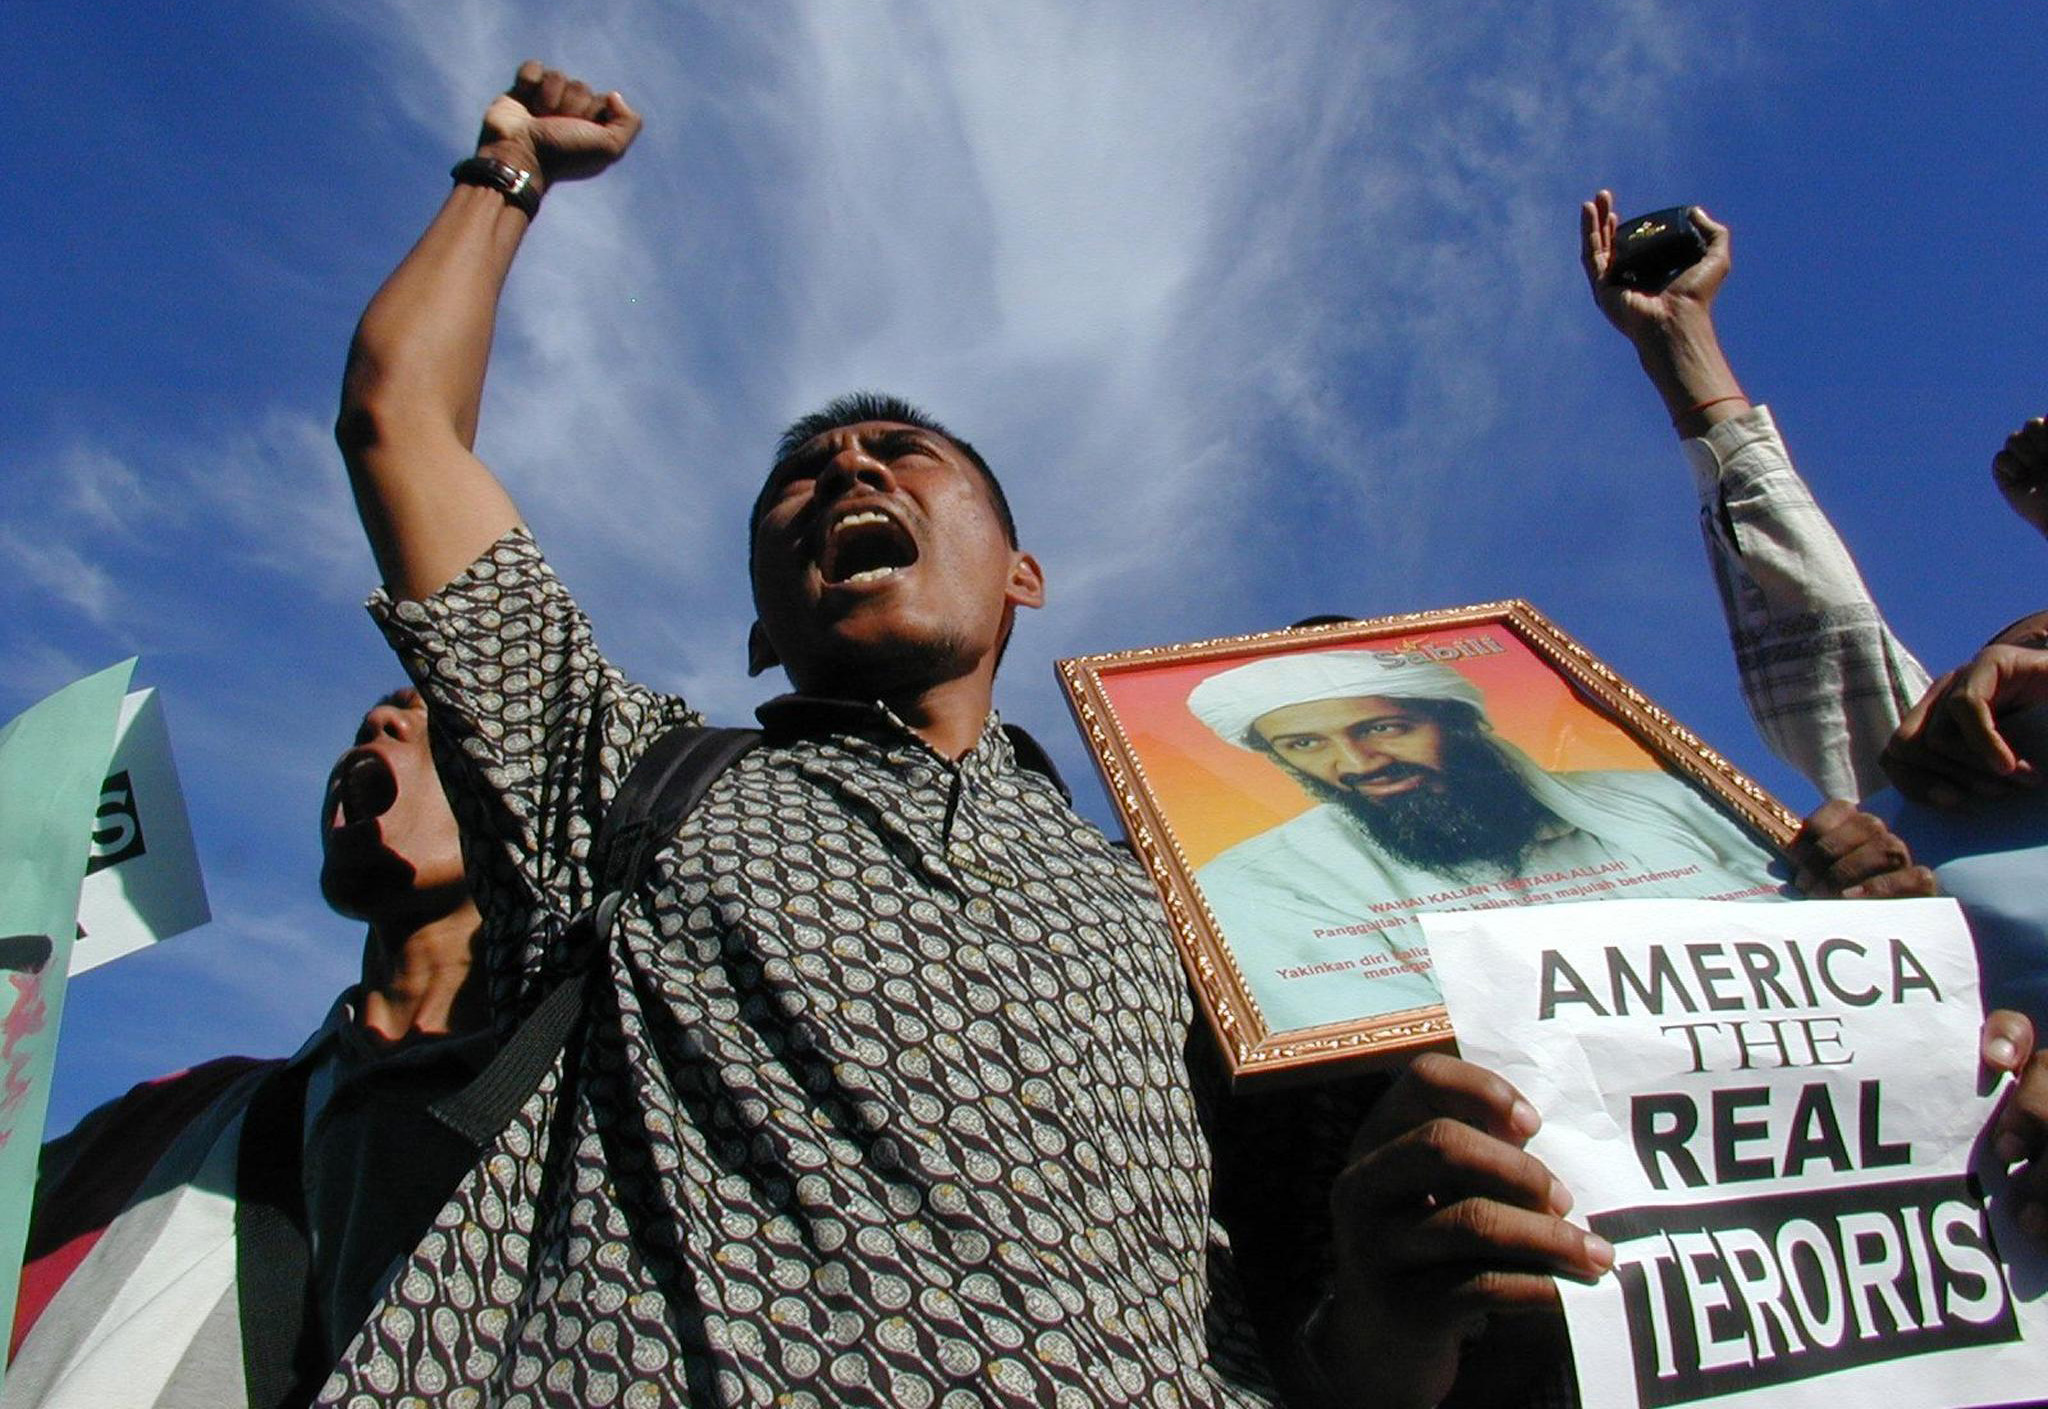 """BANDA ACEH, INDONESIA:  A Muslim protestor holding a portrait of Saudi-dissident Osama bin Laden shout """"Allah Akbar"""" during a protest in front of Baiturrahman mosque, Banda Aceh, 10 October 2001. The demonstrators are protesting against the US-led military strikes against Afghanistan.       AFP PHOTO (Photo credit should read AFP/Getty Images)"""